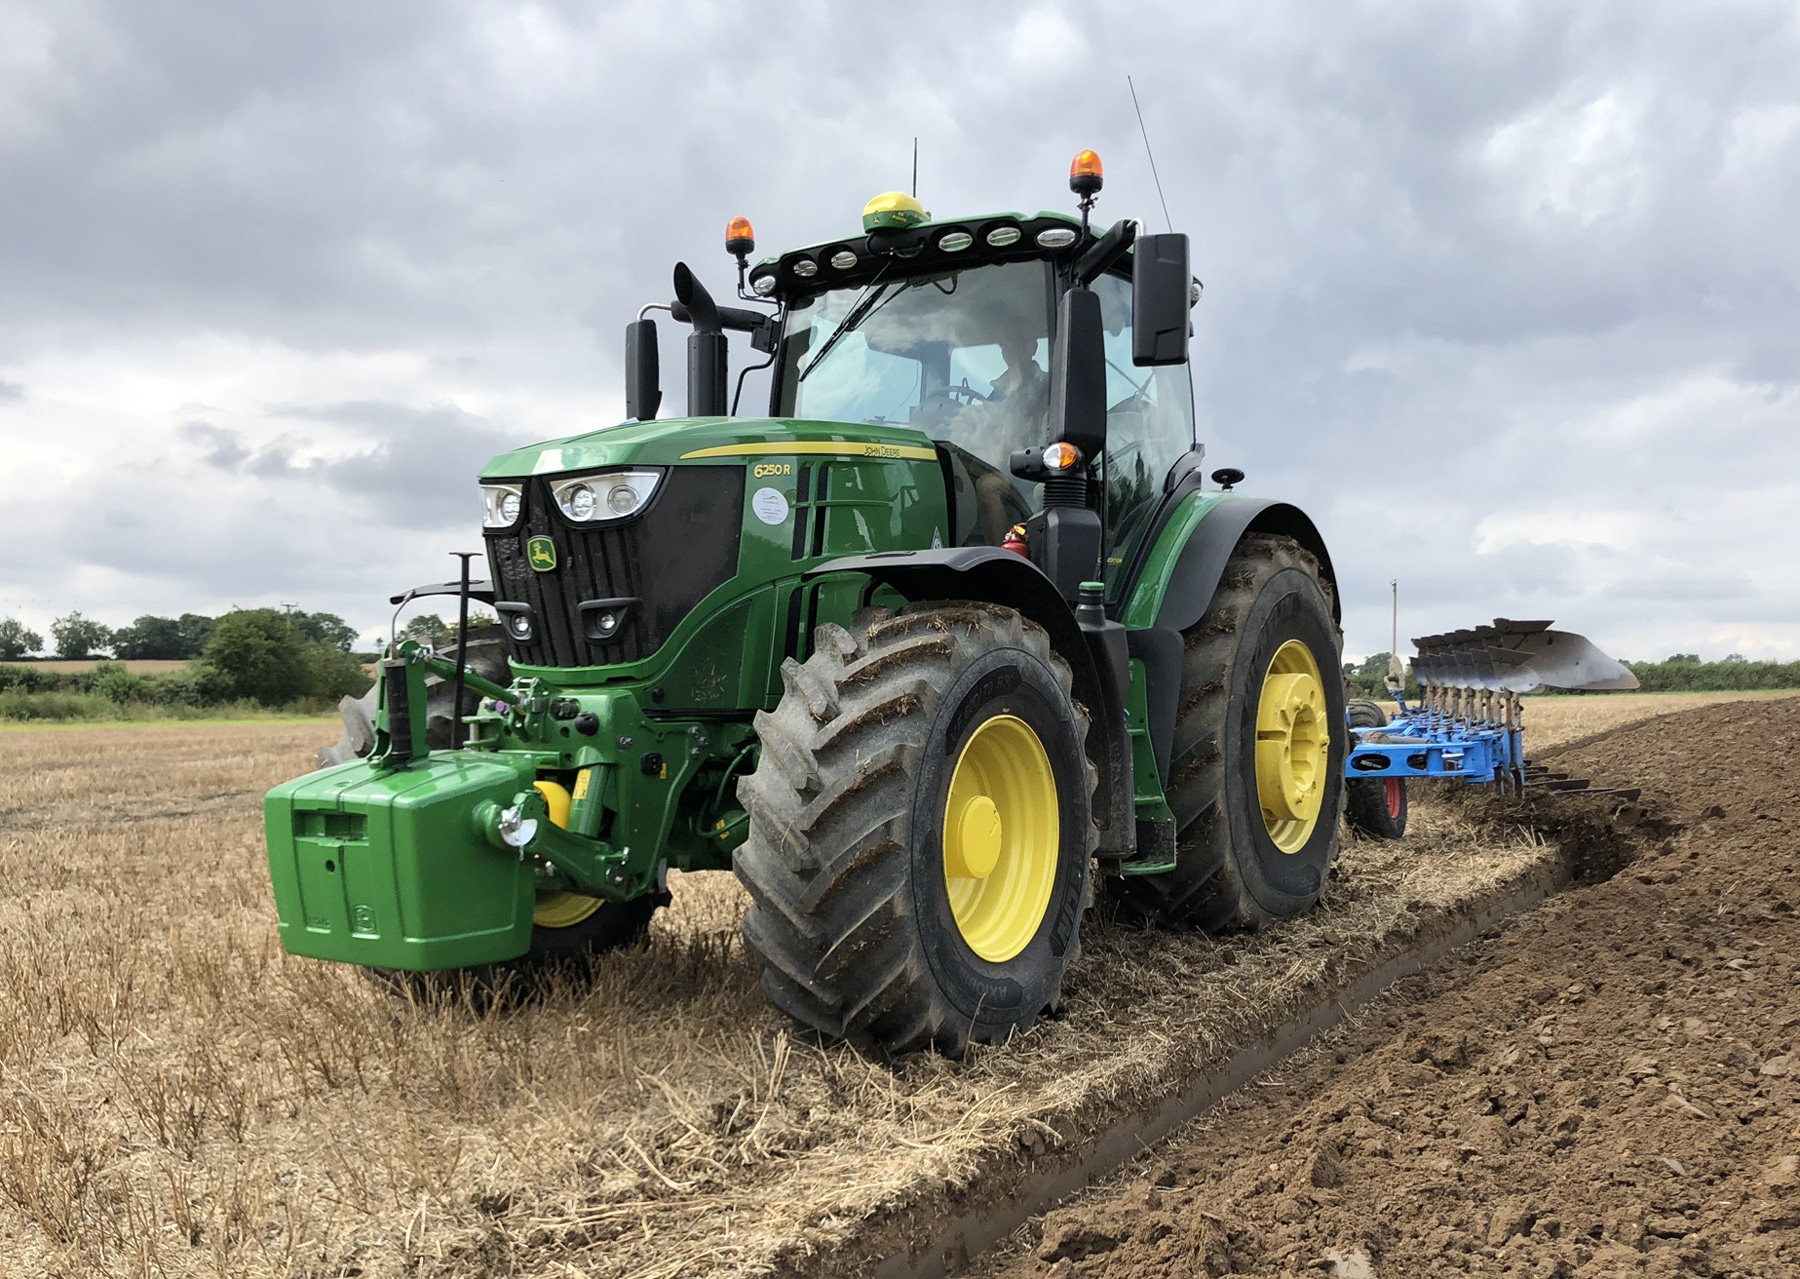 Press Release: Versatile Tractor/tyre Combination Boosts Farm Efficiency